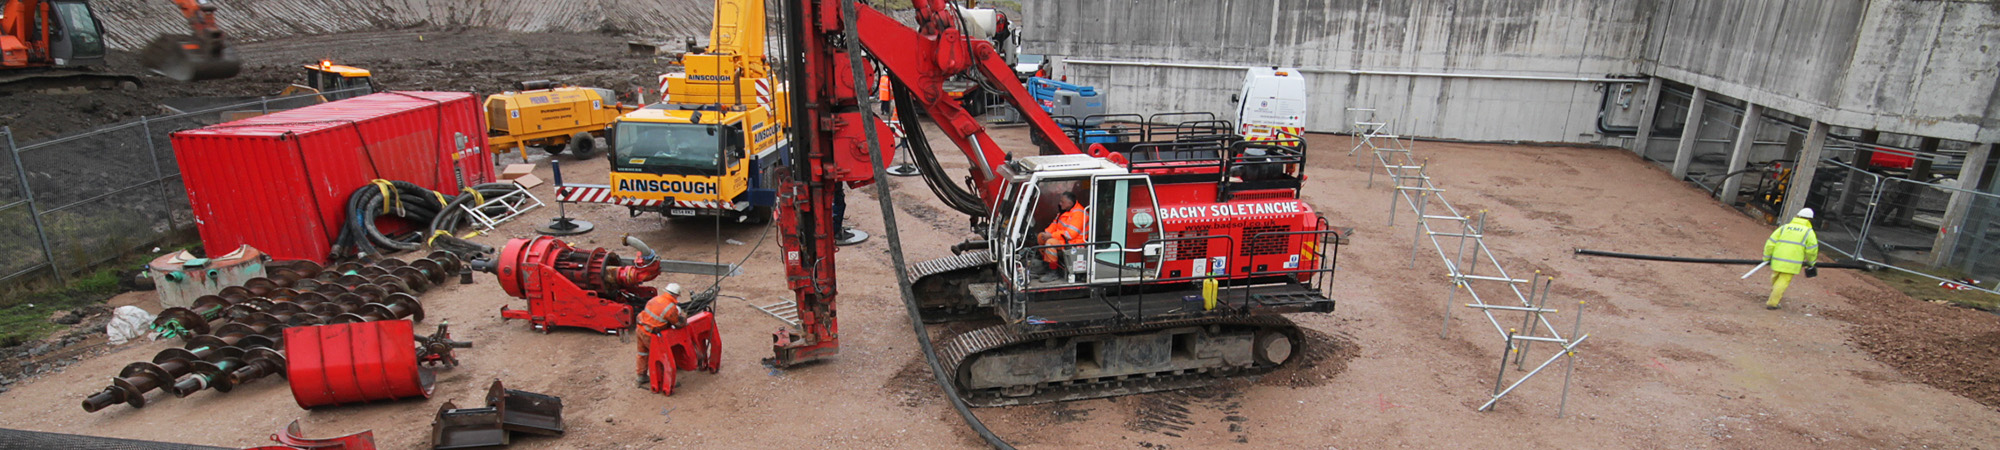 Lostock Water Treatment Works tank installations